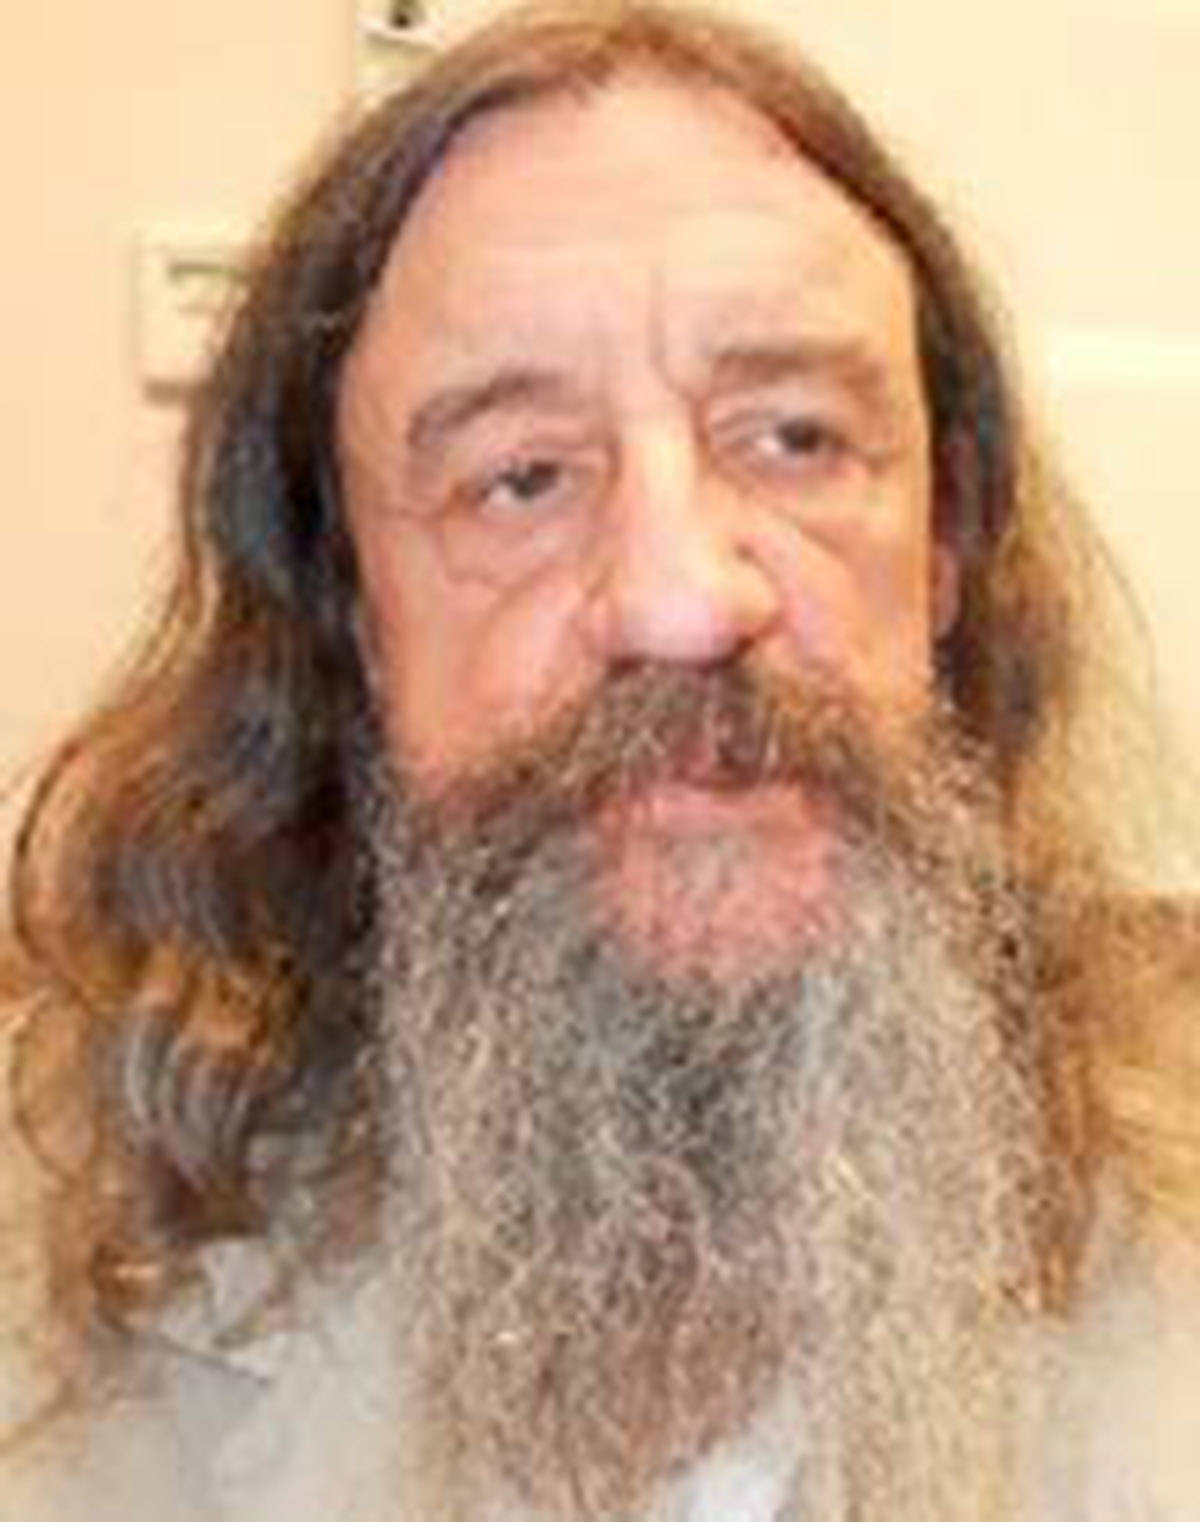 Name: Yvan Savard Age: 62 Height: 5'6 ft Weight: 145 lbs Hair: Brown Eyes: Green/Brown Wanted: Assault Peace Officer & Assault w/ a Weapon Warrant in effect: August 10, 2020 Parole Jurisdiction: Vancouver, BC